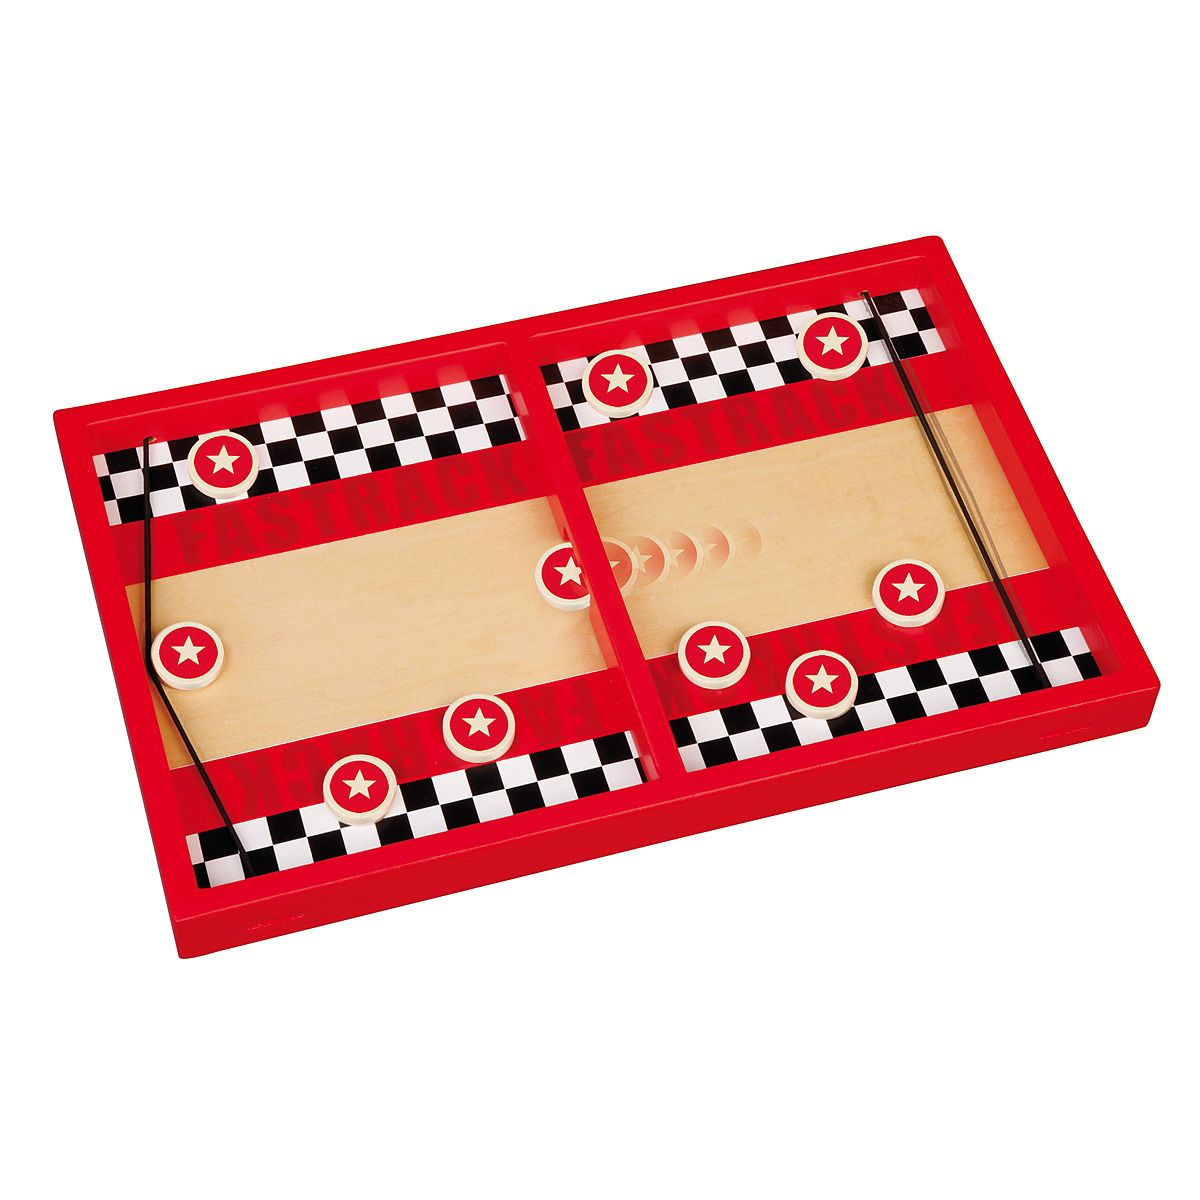 Fastrack Game Orange Games Wooden Games Gifts For Kids